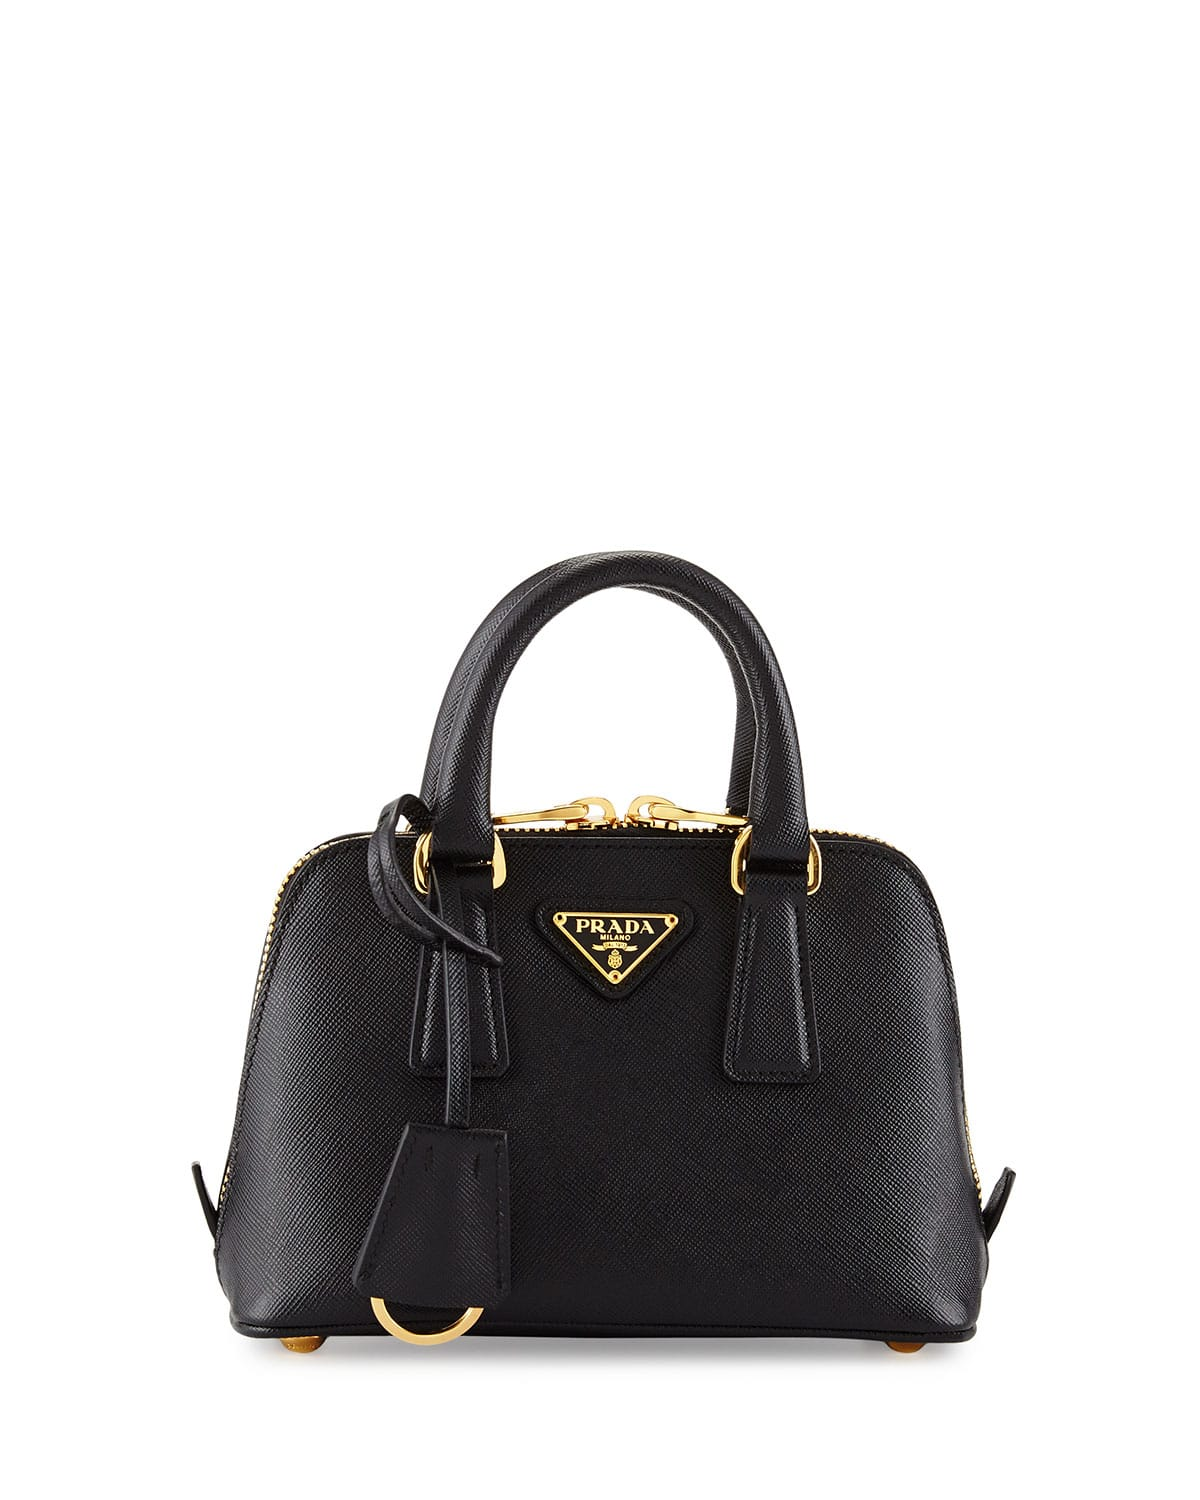 prada canvas handbag - prada mini canvas black bag